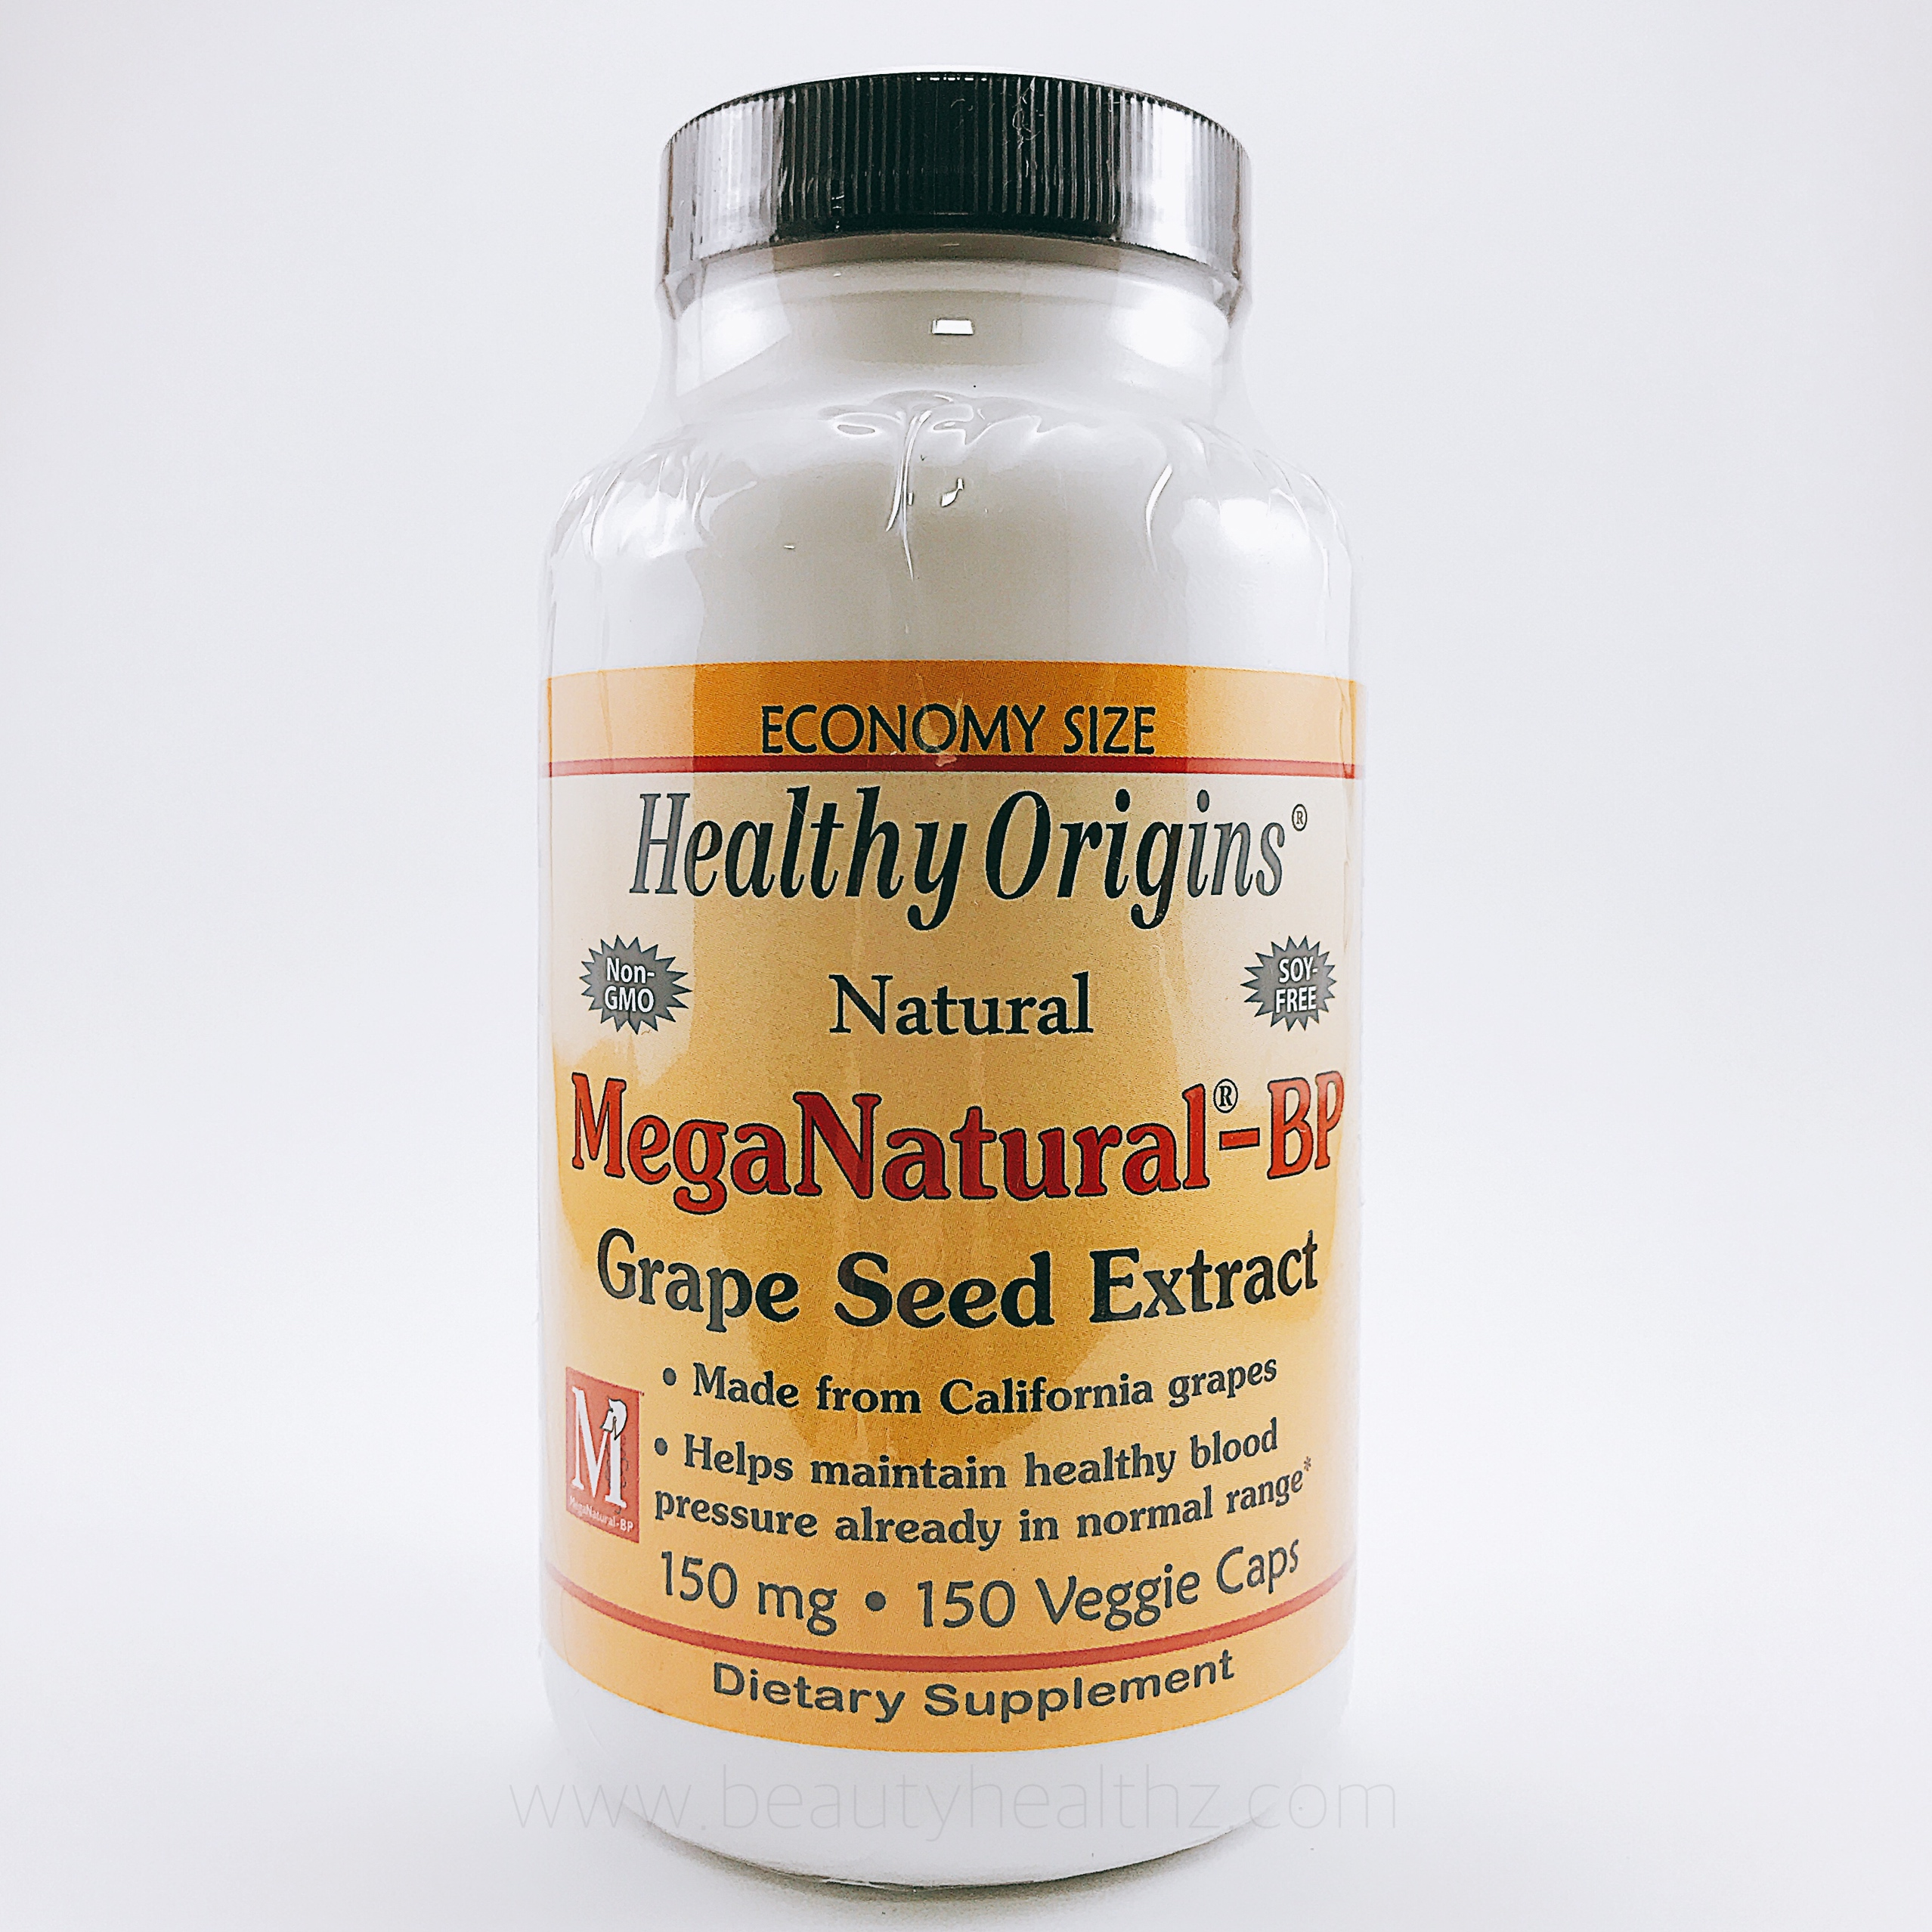 Healthy Origins, MegaNatural-BP Grape Seed Extract, 150 mg, 150 Veggie Caps